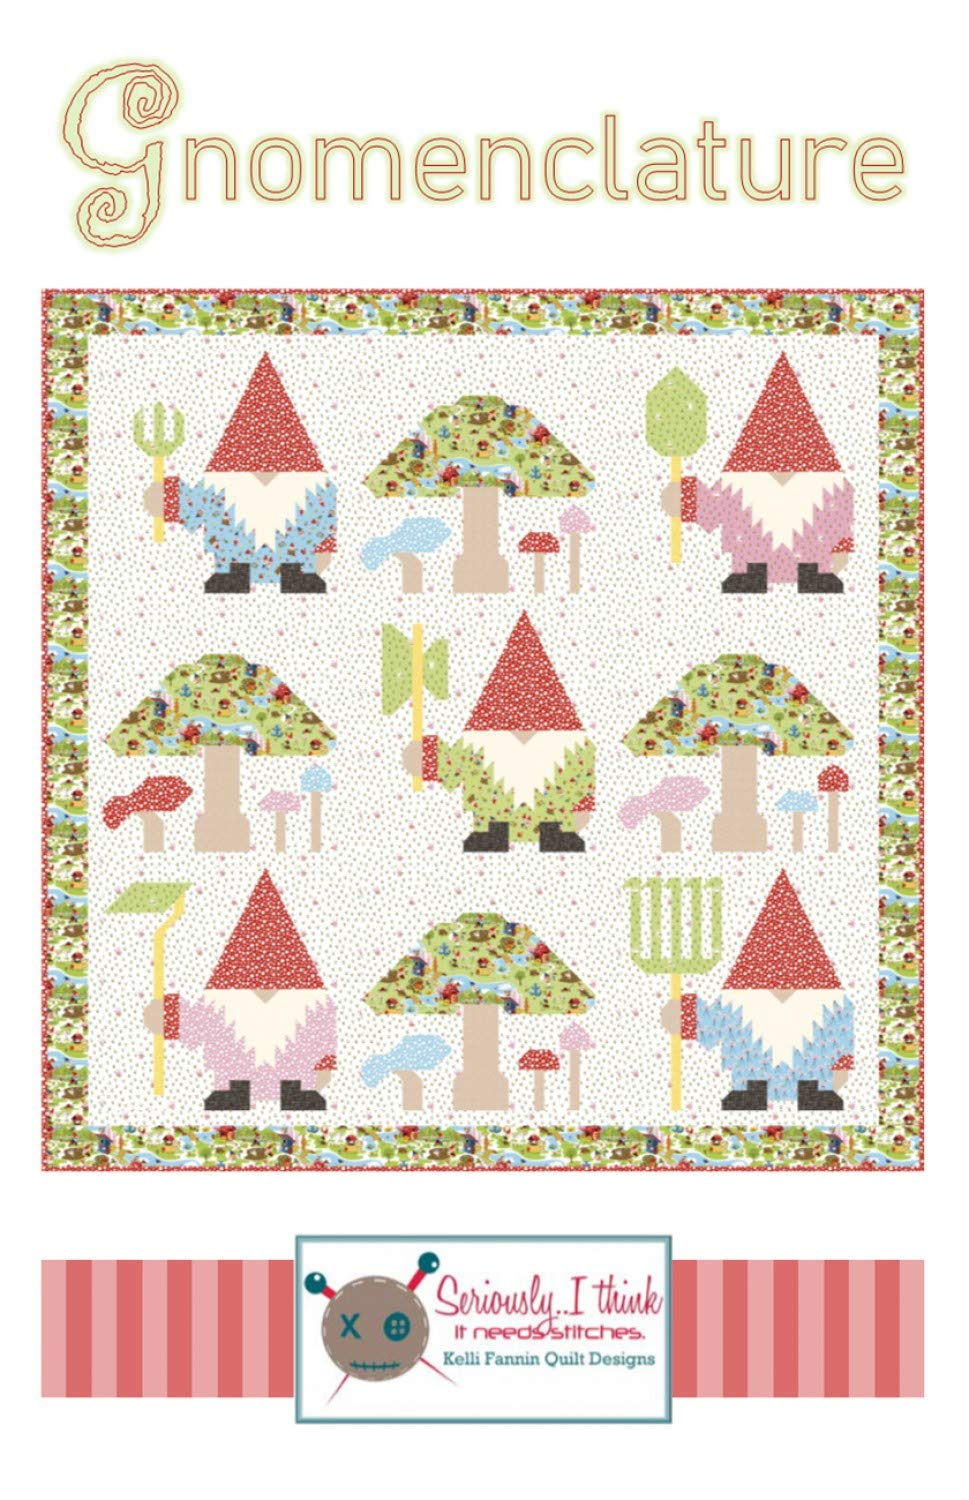 Gnomenclature Gnomes Quilt Pattern by Kelli Fannin Quilt Designs from Seriously I Think it Needs Stitches KFQP137-86 x 86